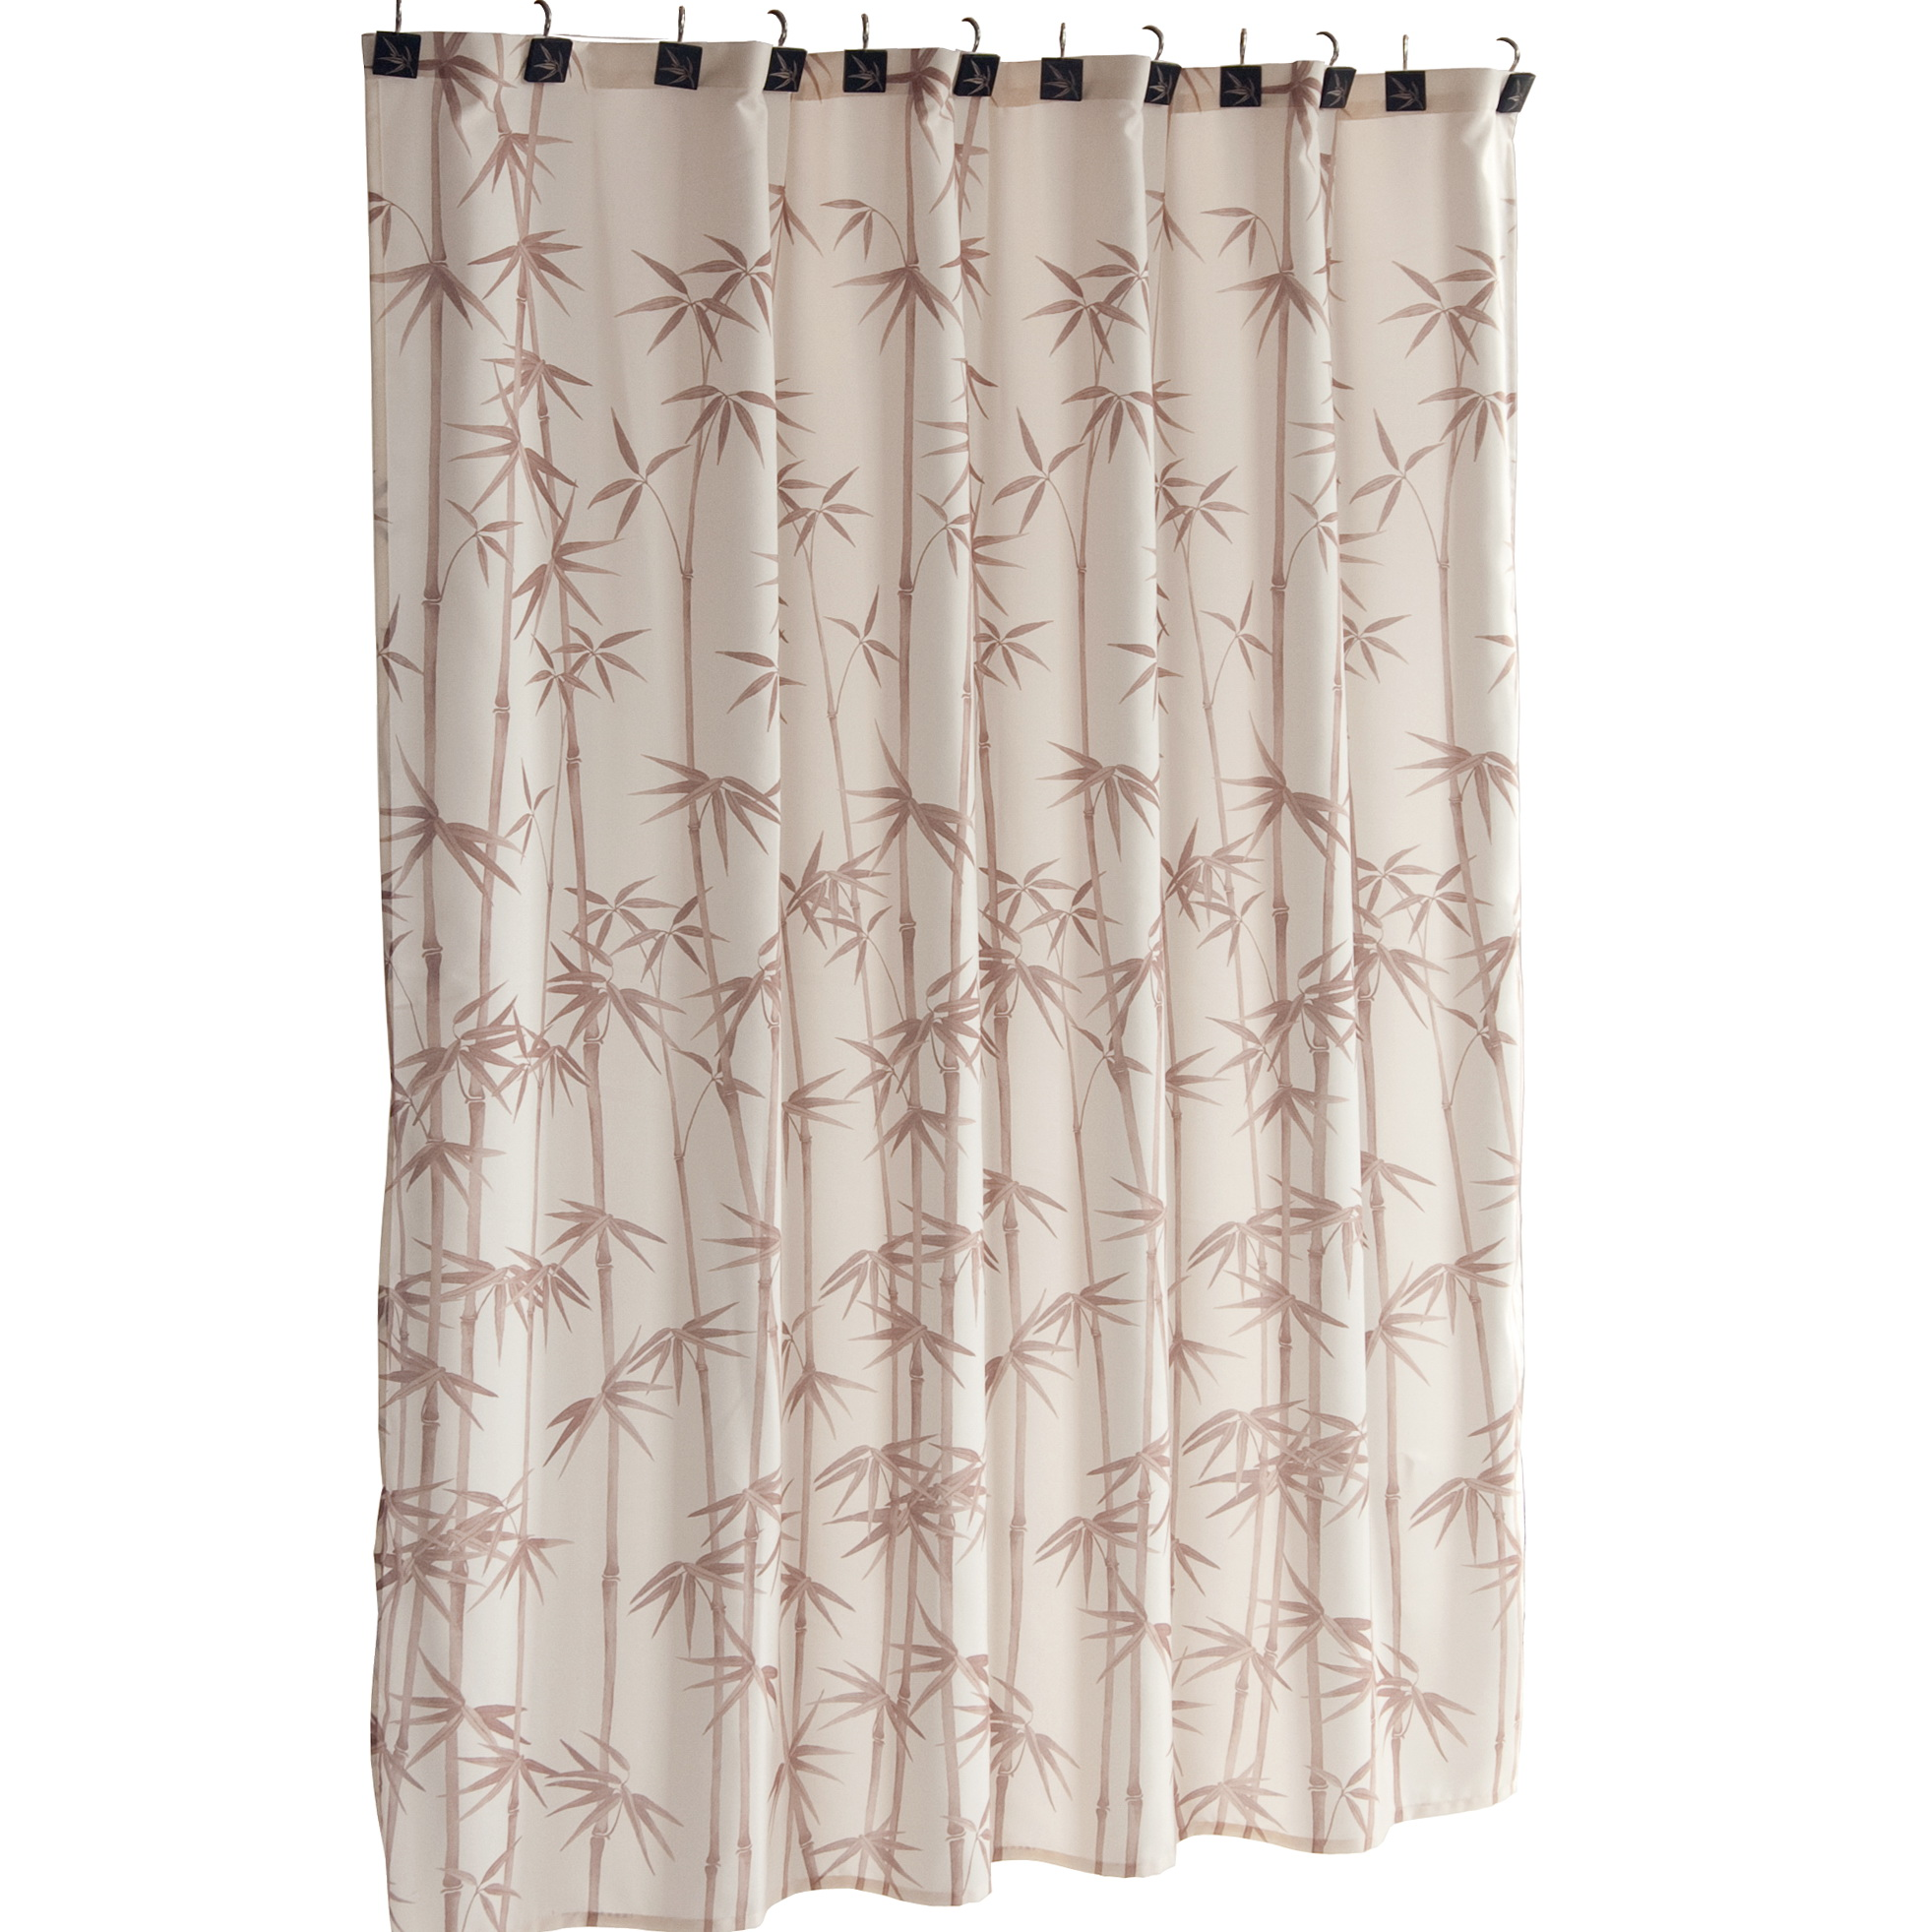 Shower Curtain Liners At Walmart